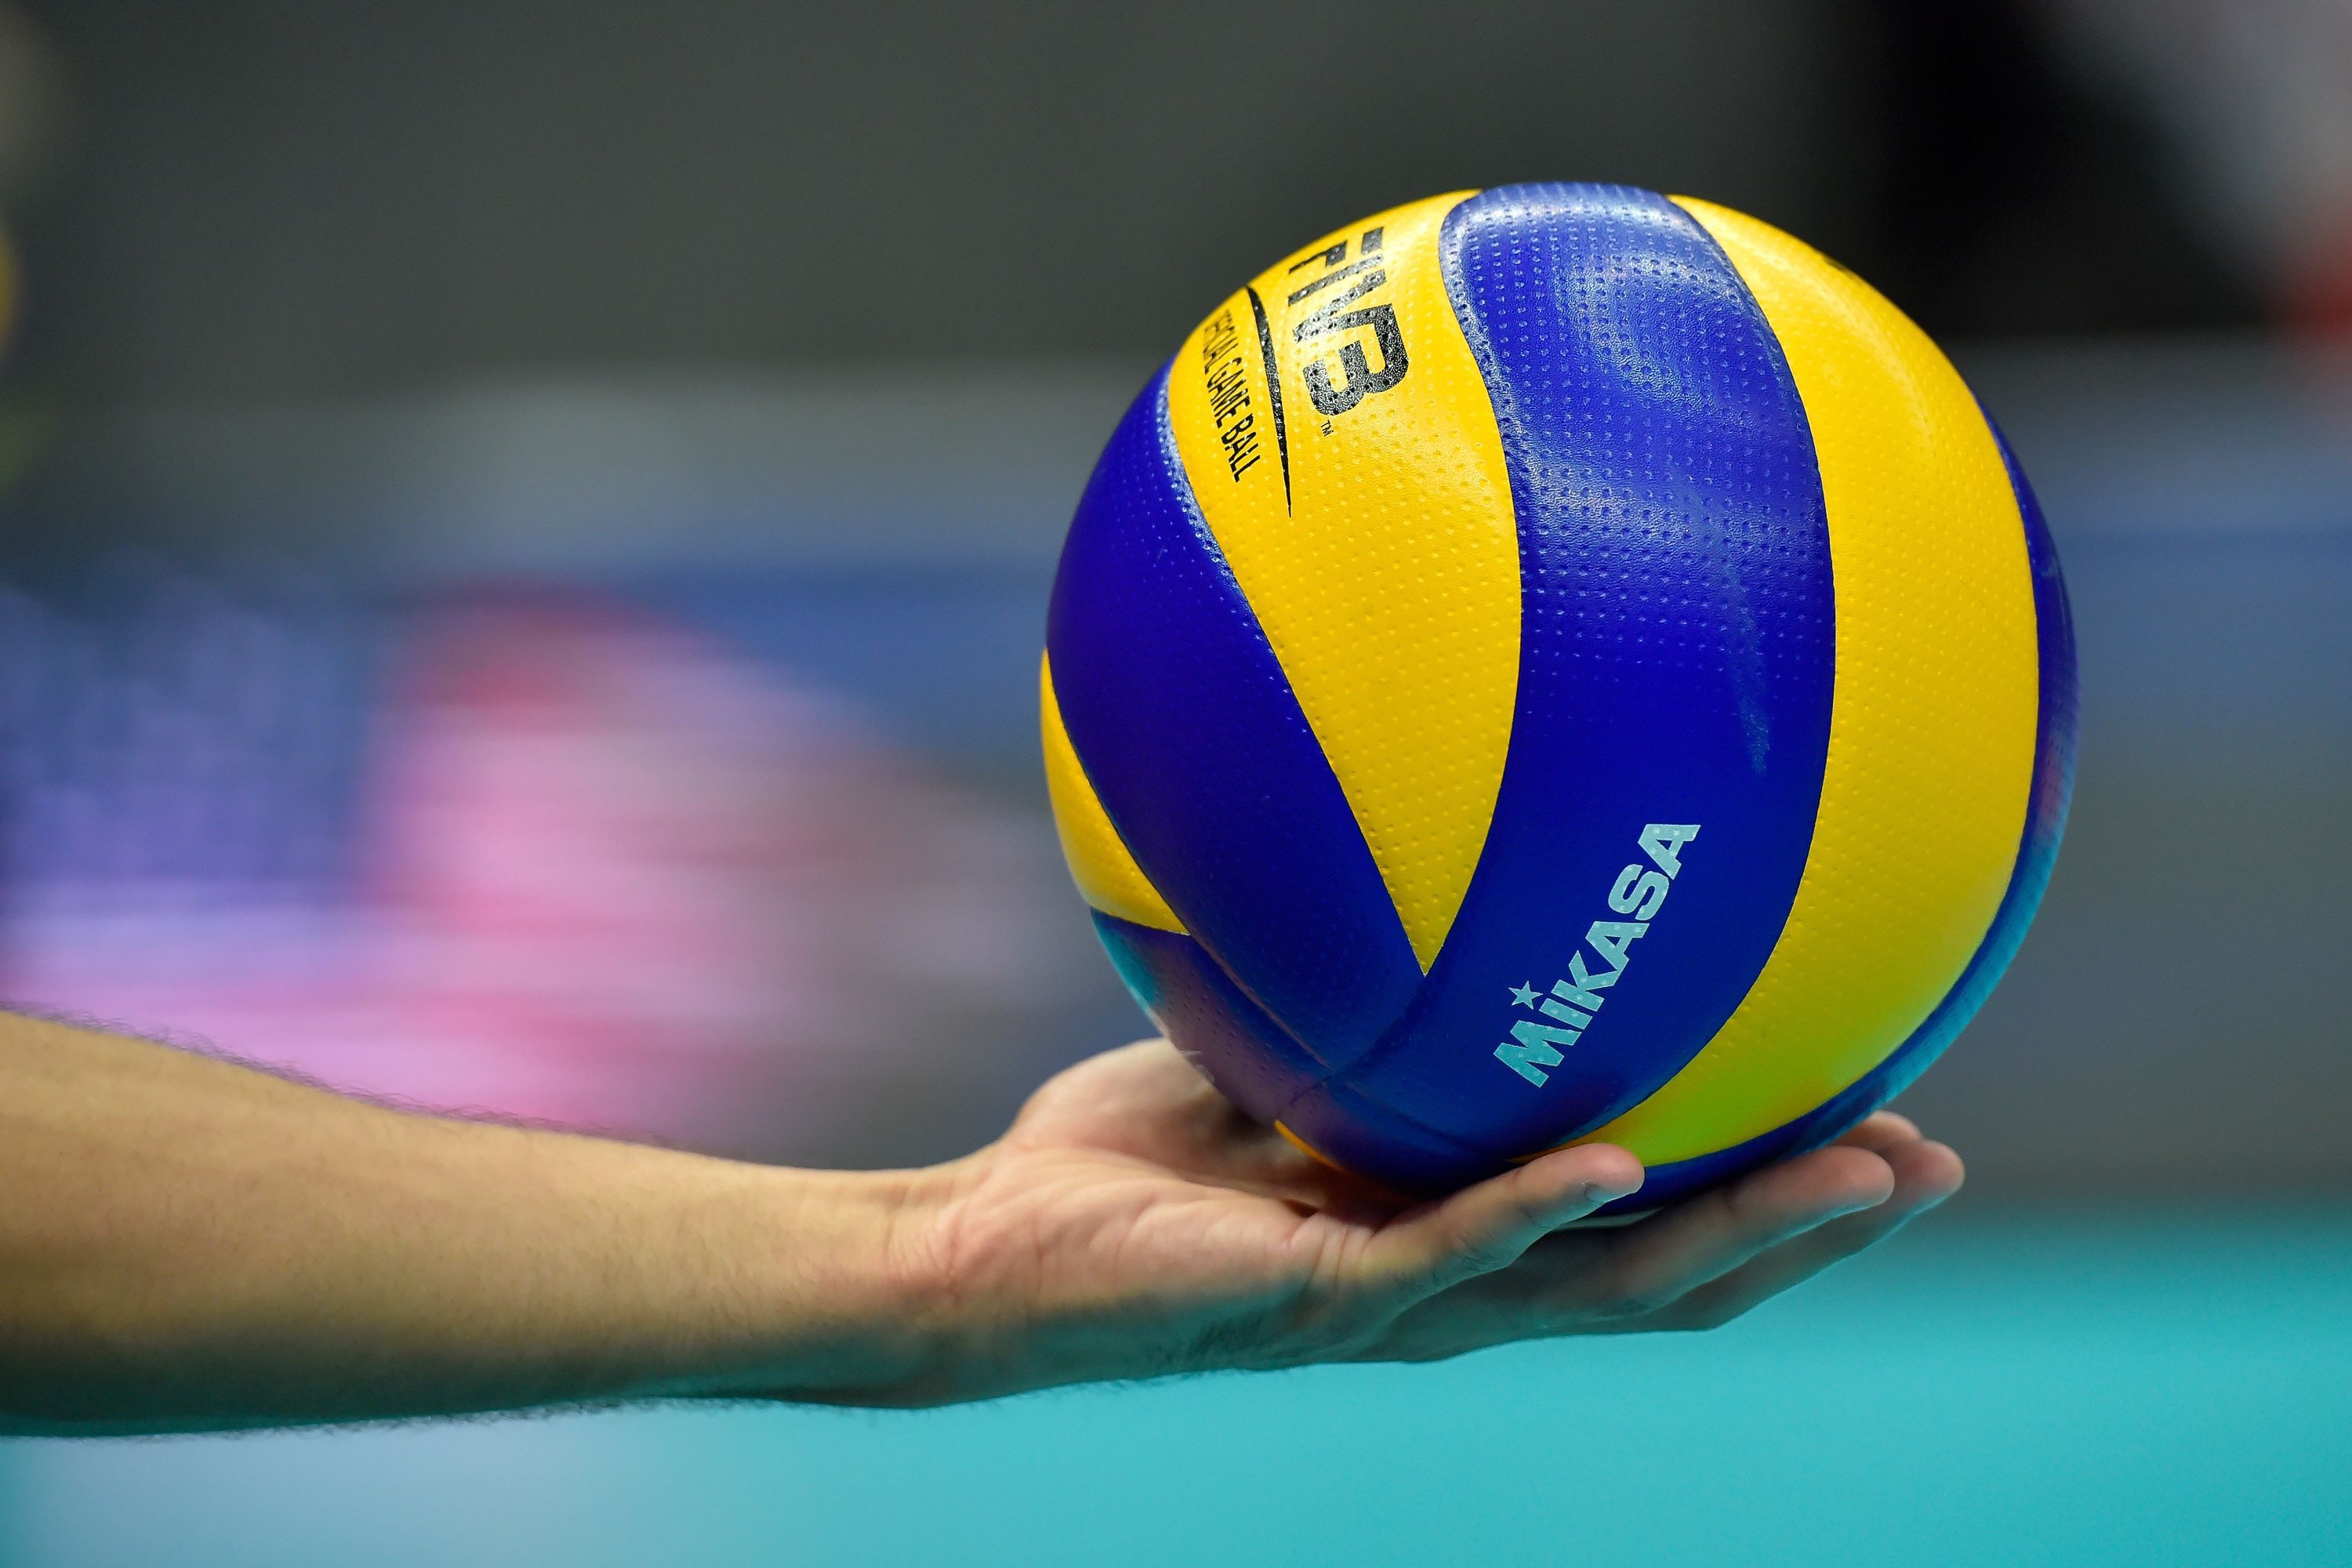 Volleyball Wallpapers Images Photos Pictures Backgrounds Volleyball Wallpaper Volleyball Volleyball Pictures